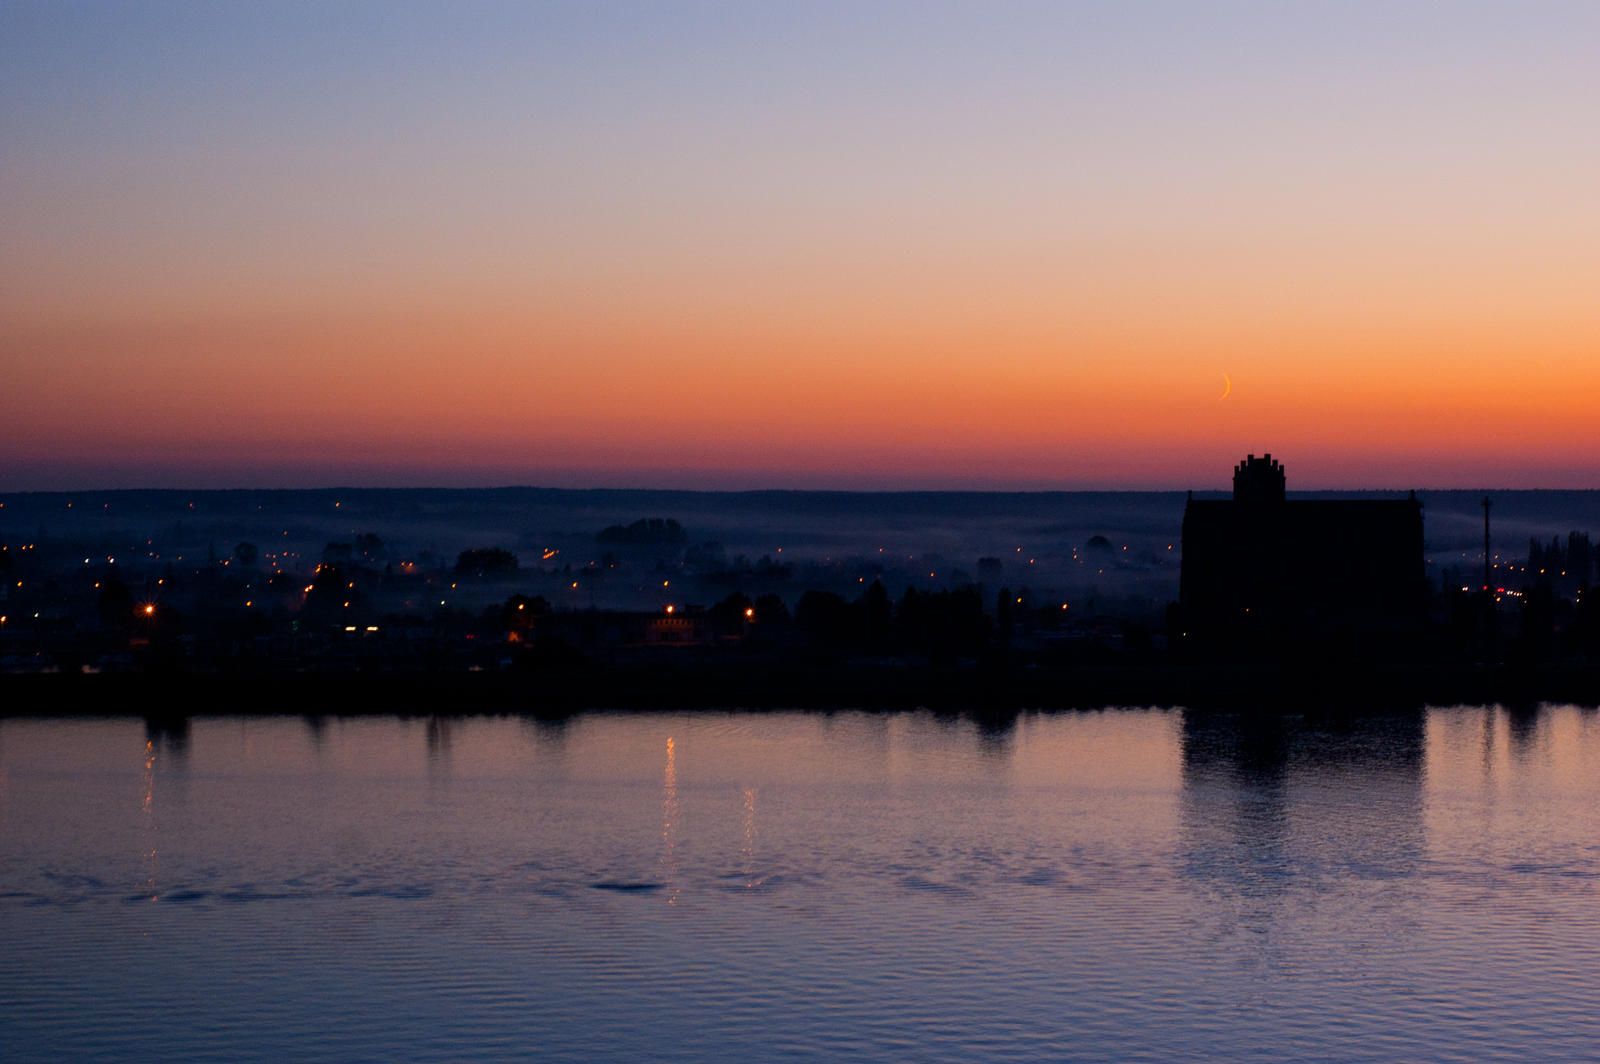 Foggy Sunset by Domichal